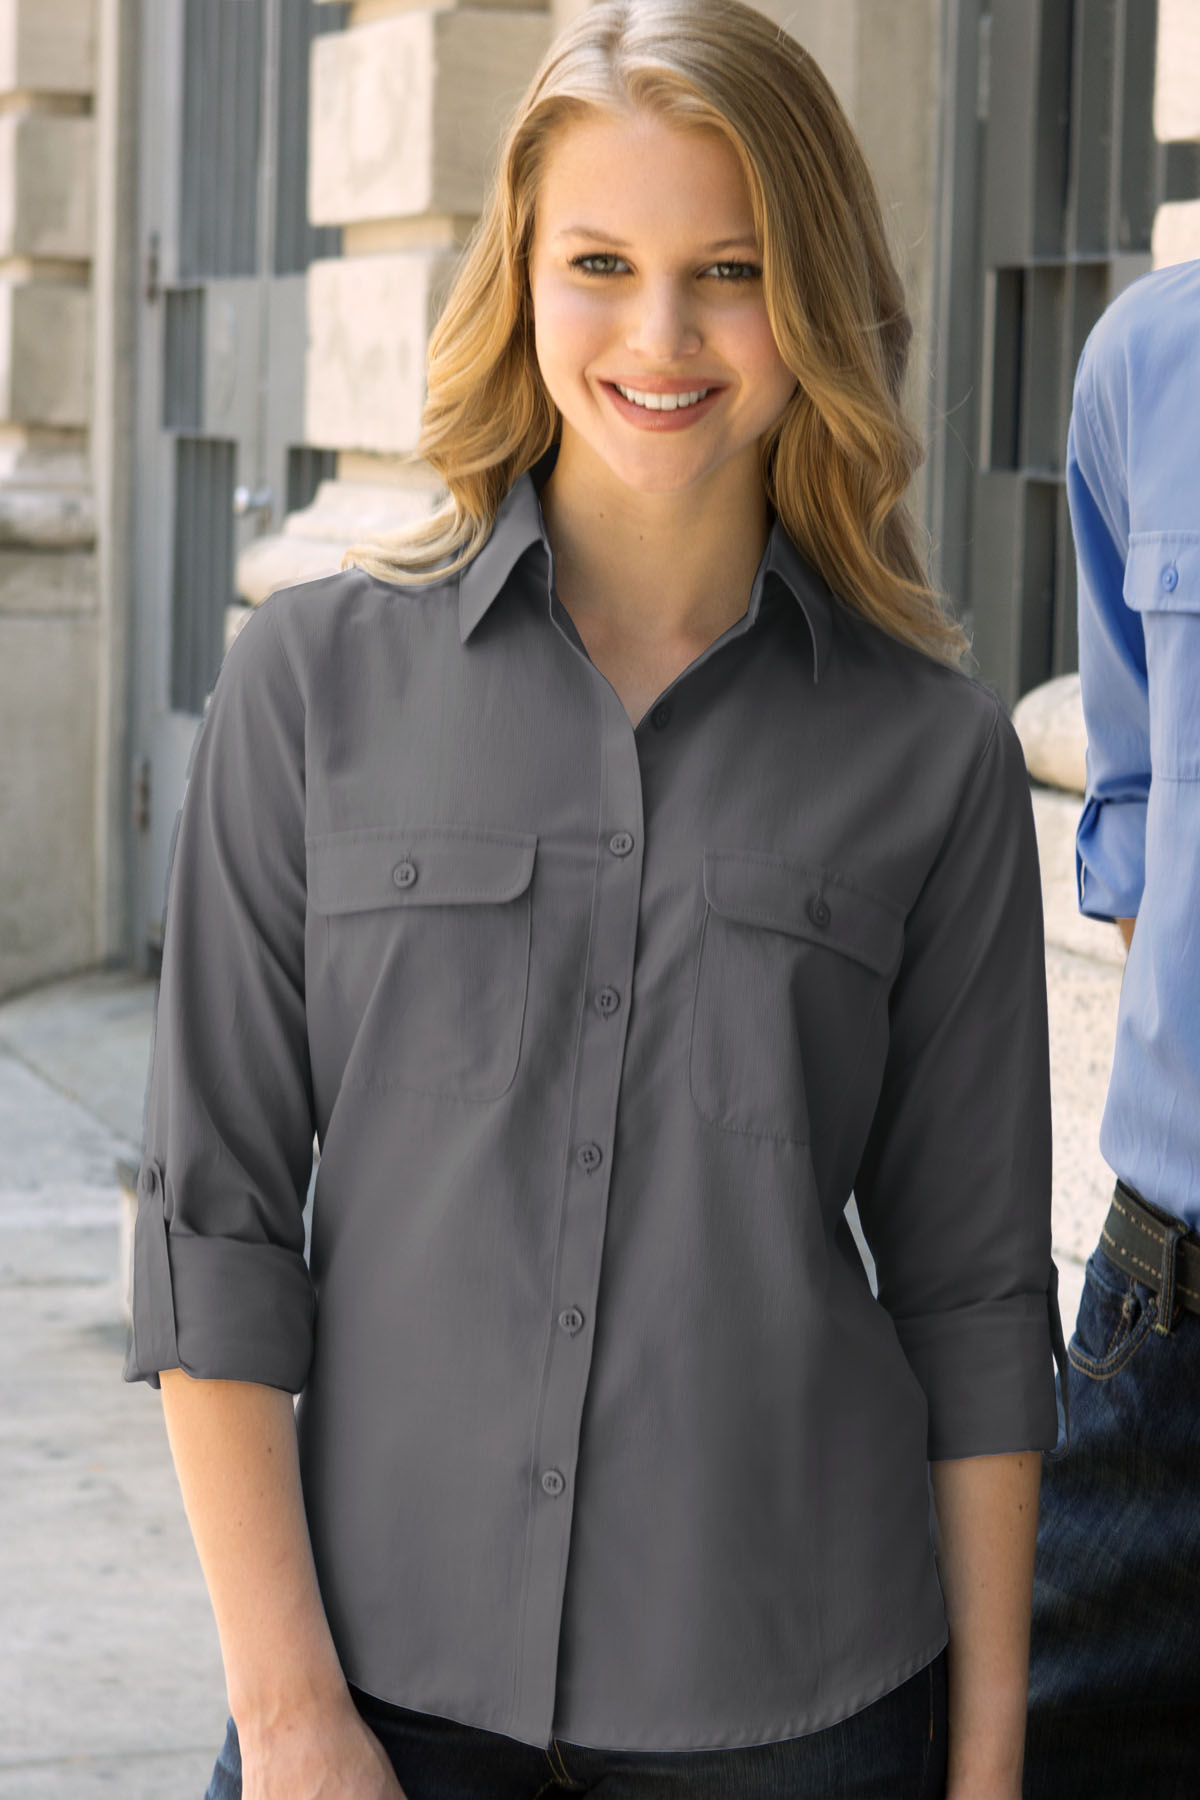 Vansport 1848 - Women's Trip Shirt